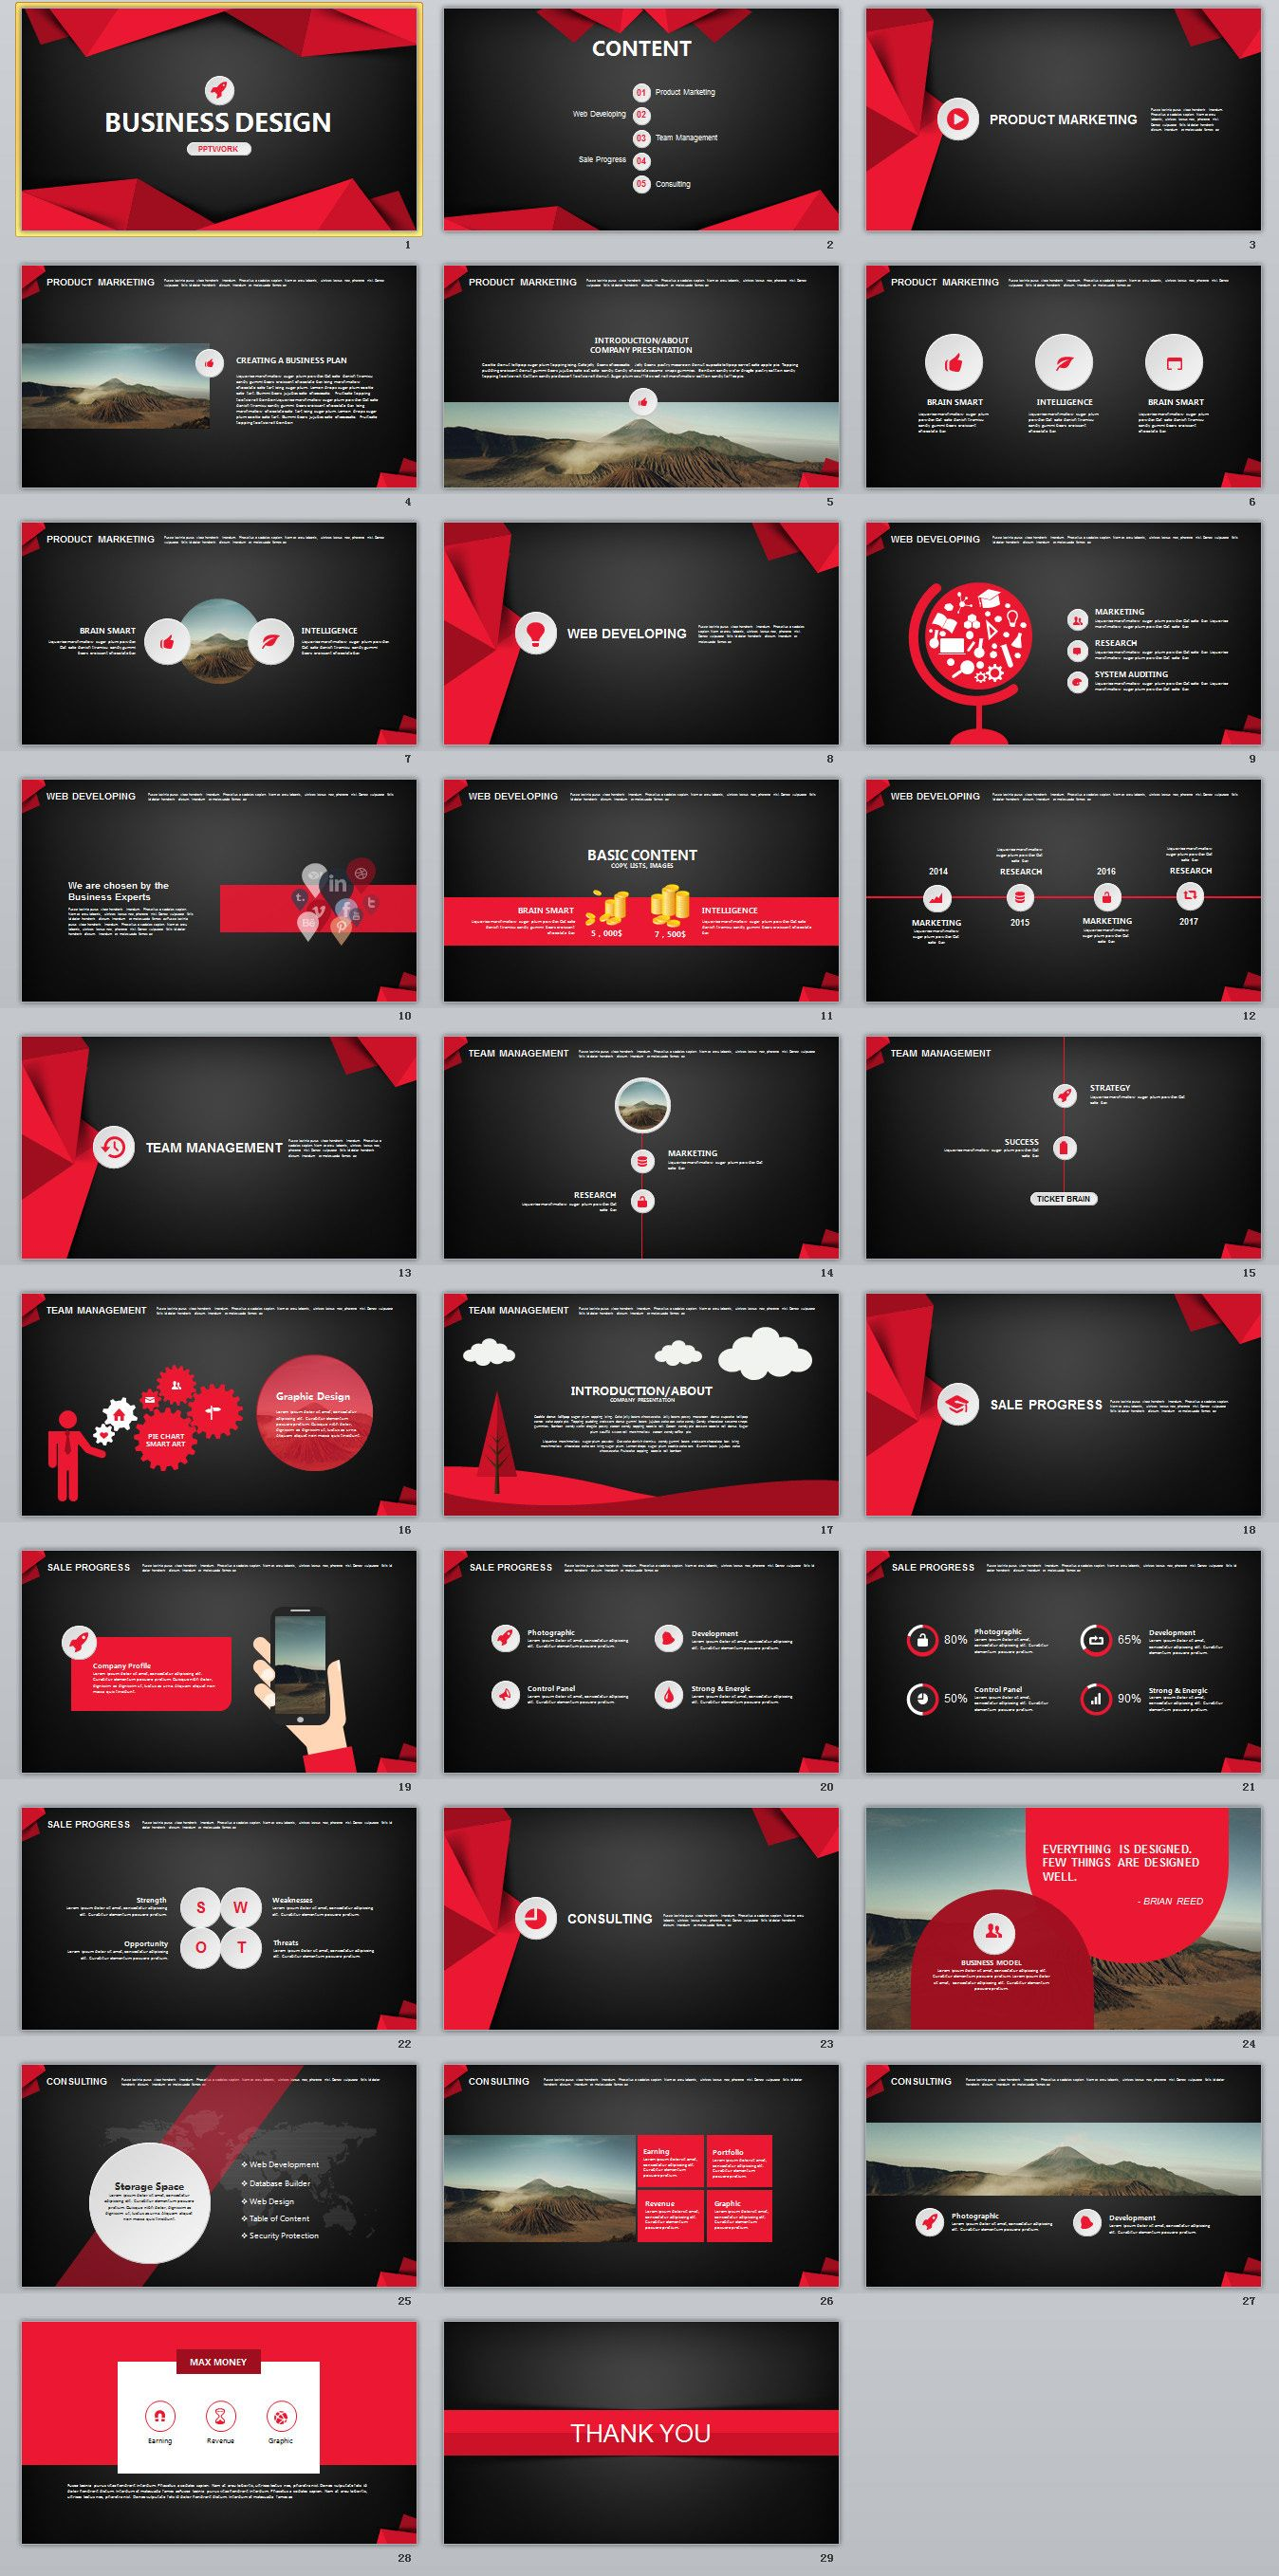 29 red black business plan powerpoint template on behance 29 red black business plan powerpoint template on behancepowerpoint templates presentation toneelgroepblik Image collections